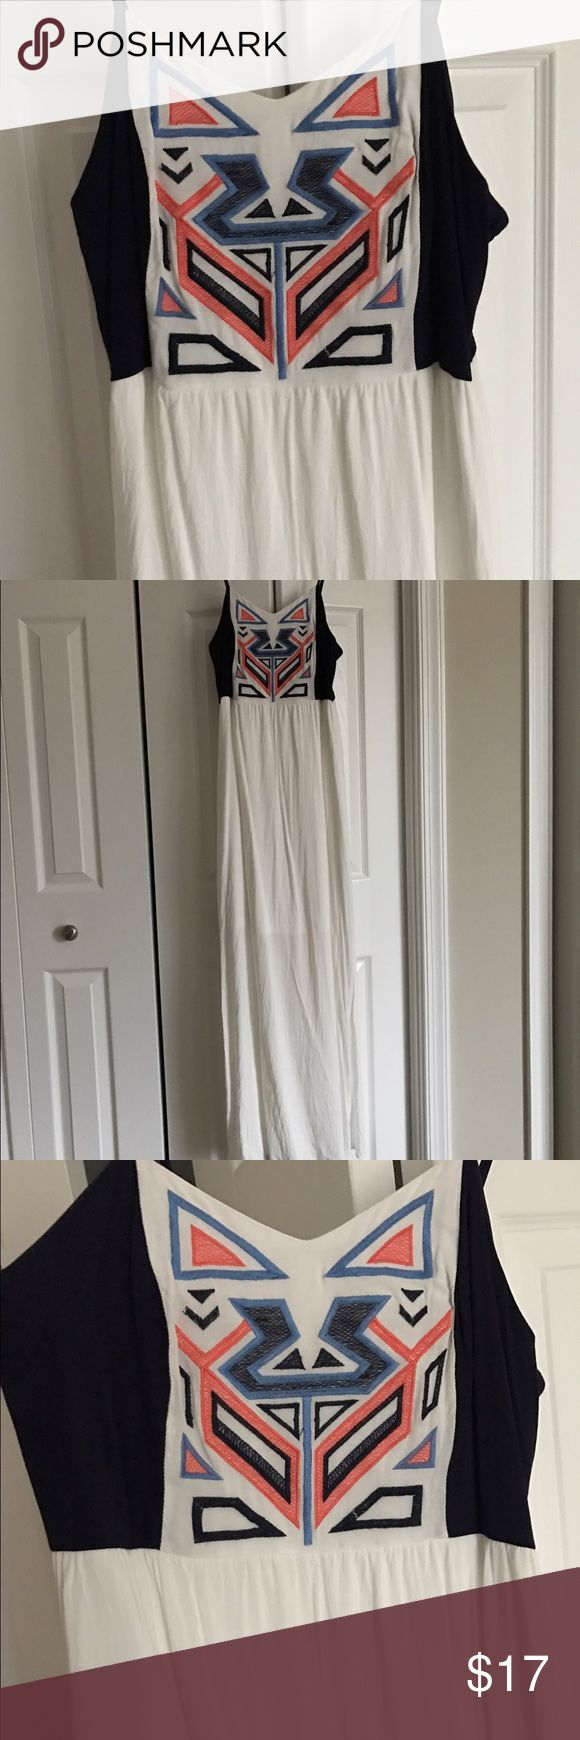 White Aztec Maxi Dress Skinny strap Aztec maxi with white skirting. Brand new, worn once (beach trip). Great for summer. Comfortable and sliming for being white. Size M Dresses Maxi